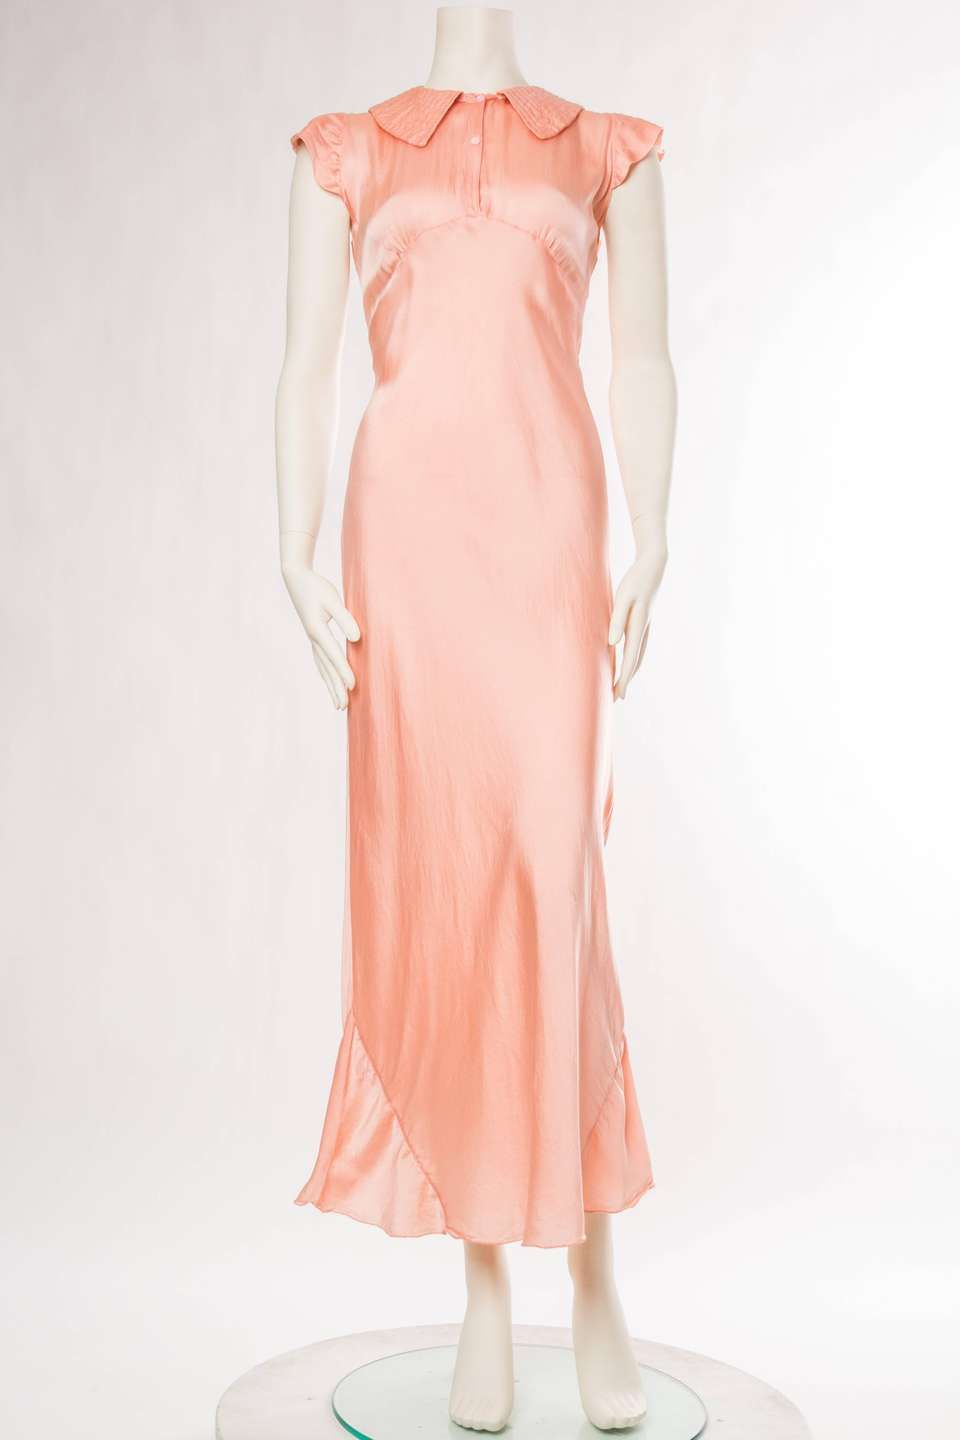 62f6594b8ef For Sale on 1stdibs - 1930s Silk Satin Negligee